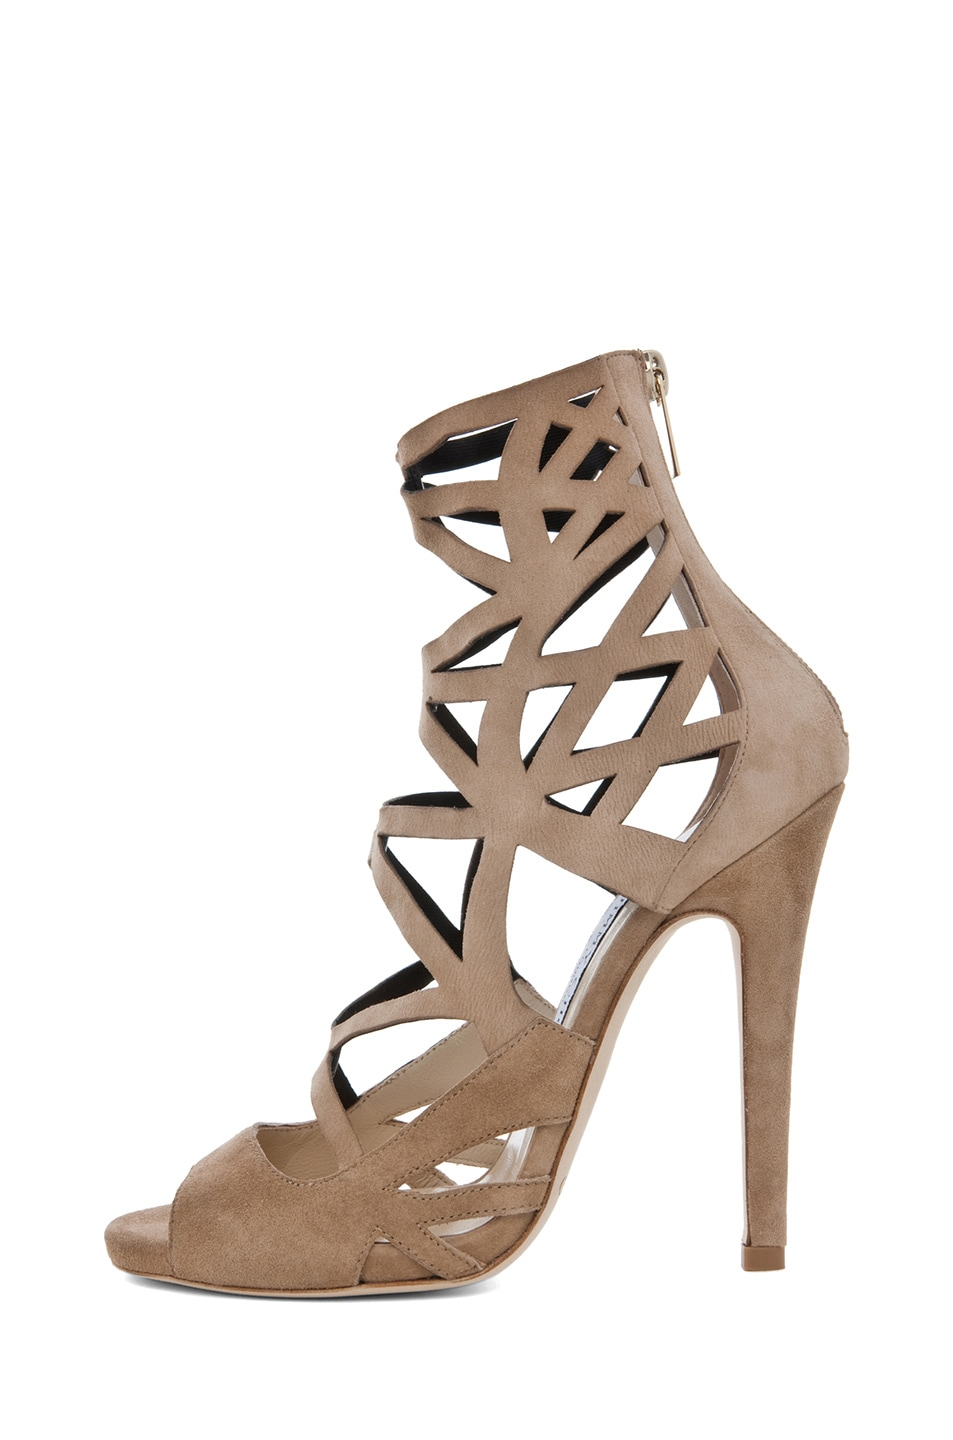 Image 1 of Jimmy Choo Viva Cut Out Bootie in Nude